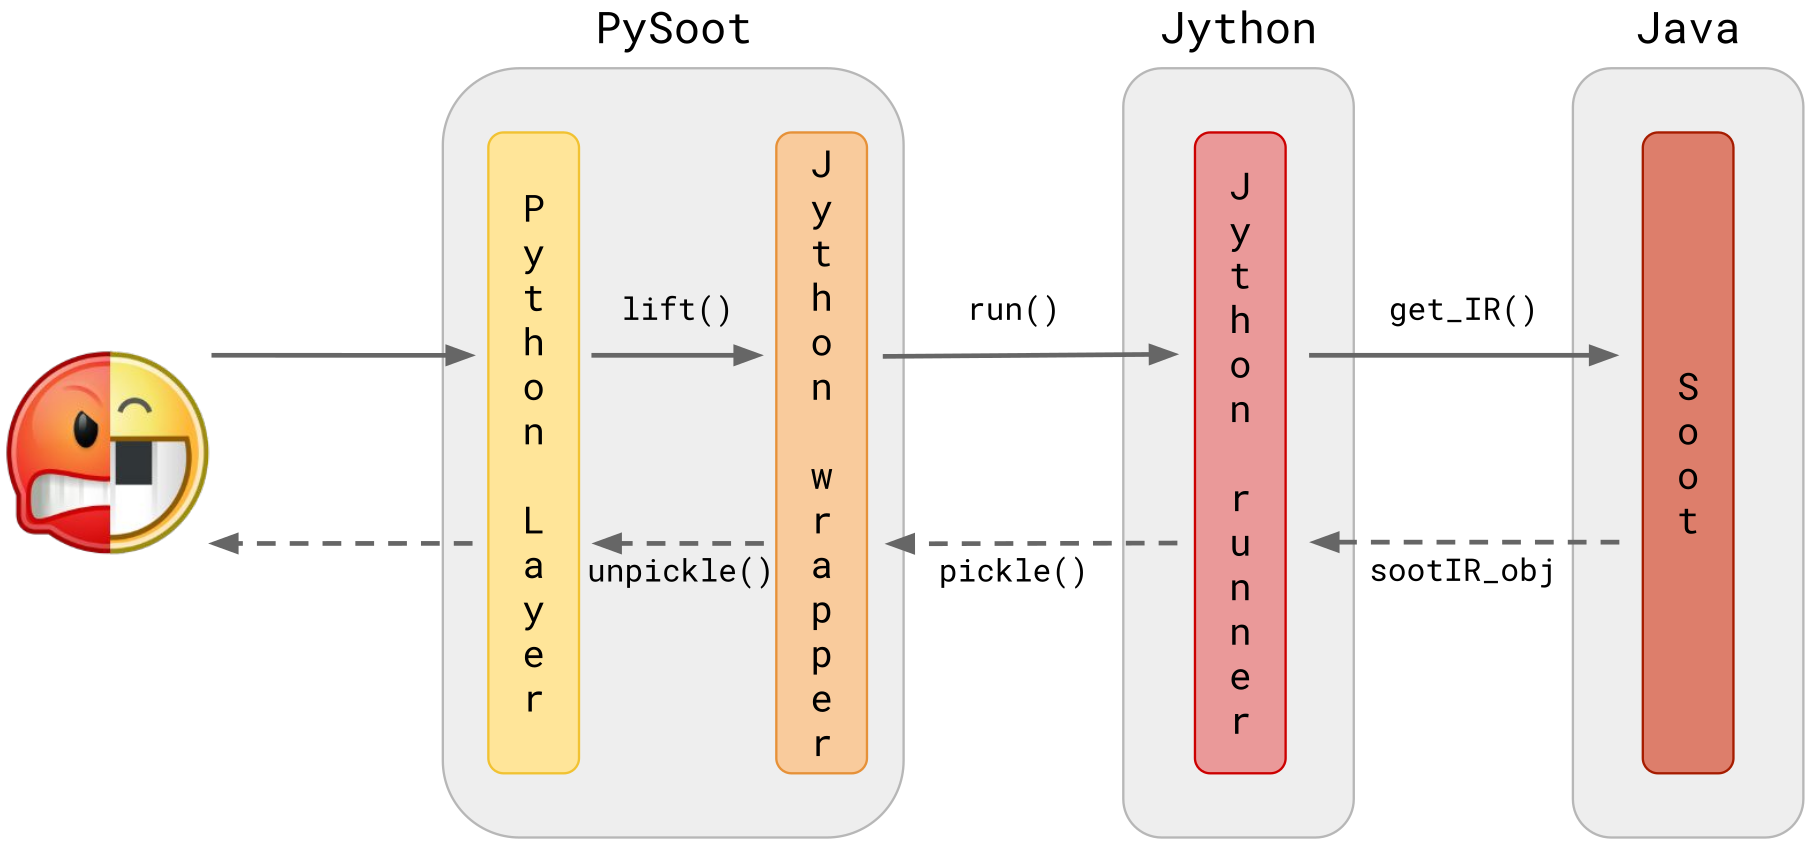 Pysoot Architecture